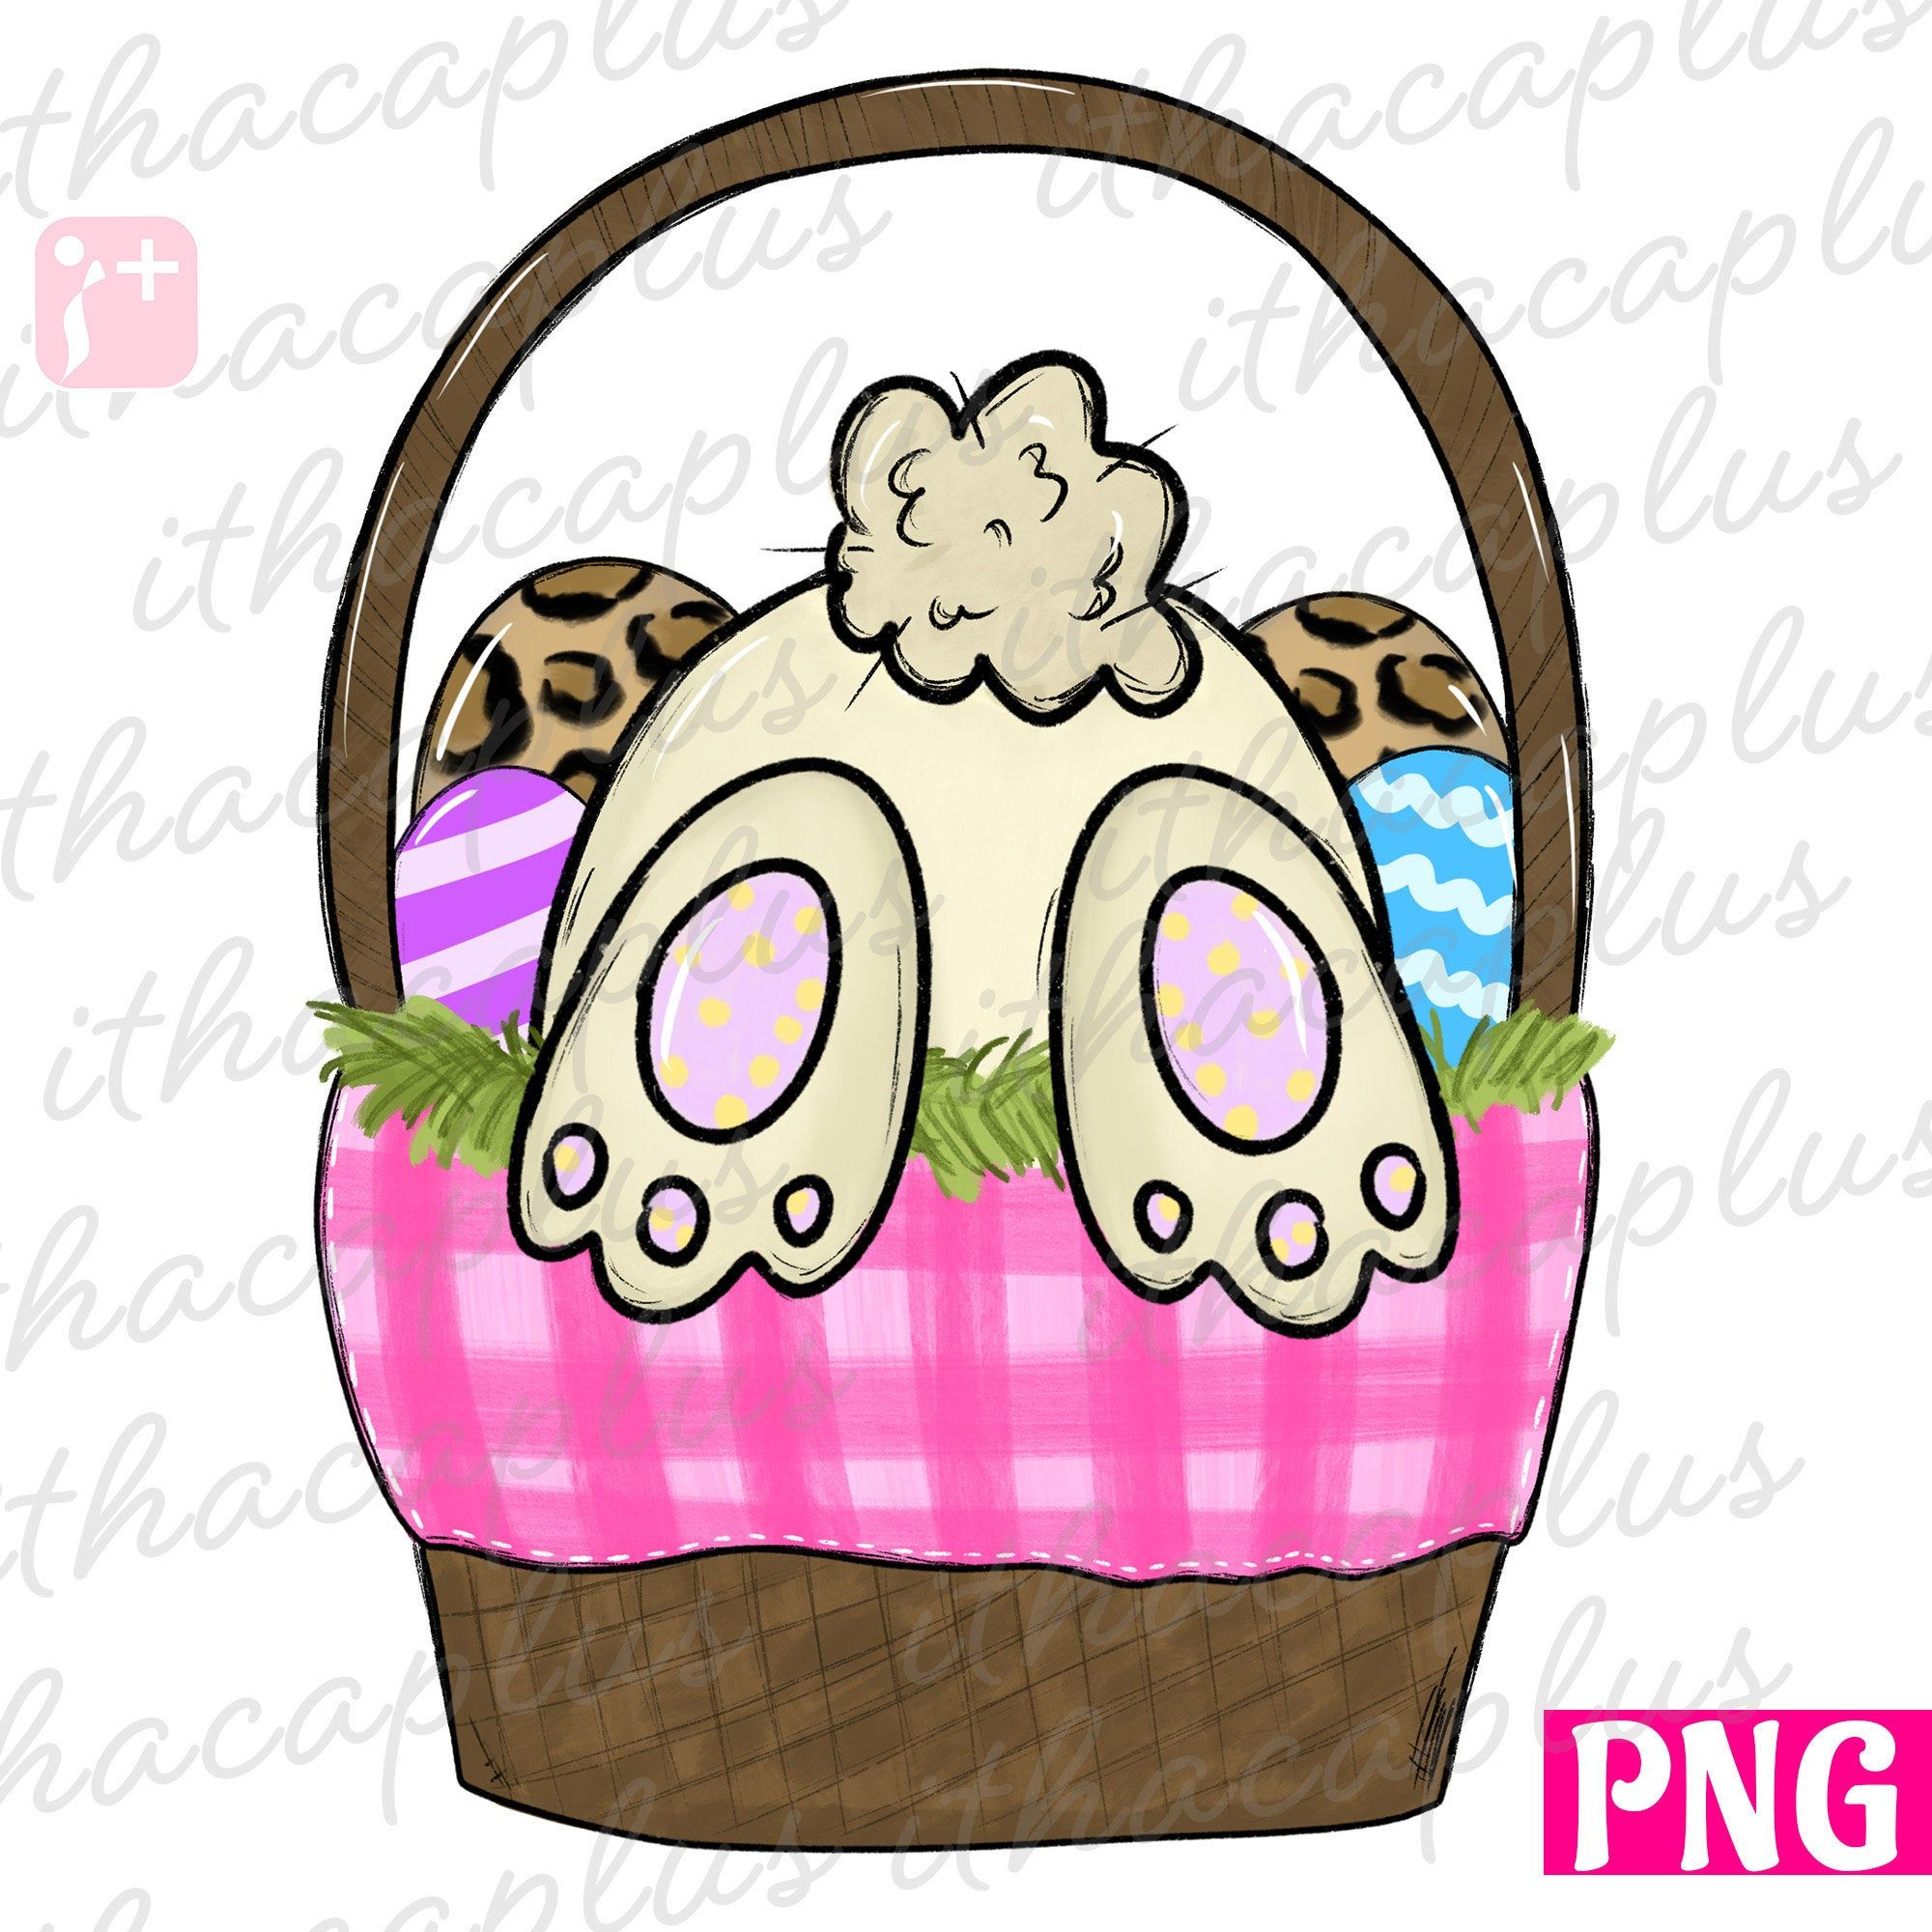 Easter Basket Png Easter Png Easter Bunny Sublimation Easter Basket Clipart Plaid Easter Basket Png Easter Drawings Easter Basket Clipart Easter Paintings